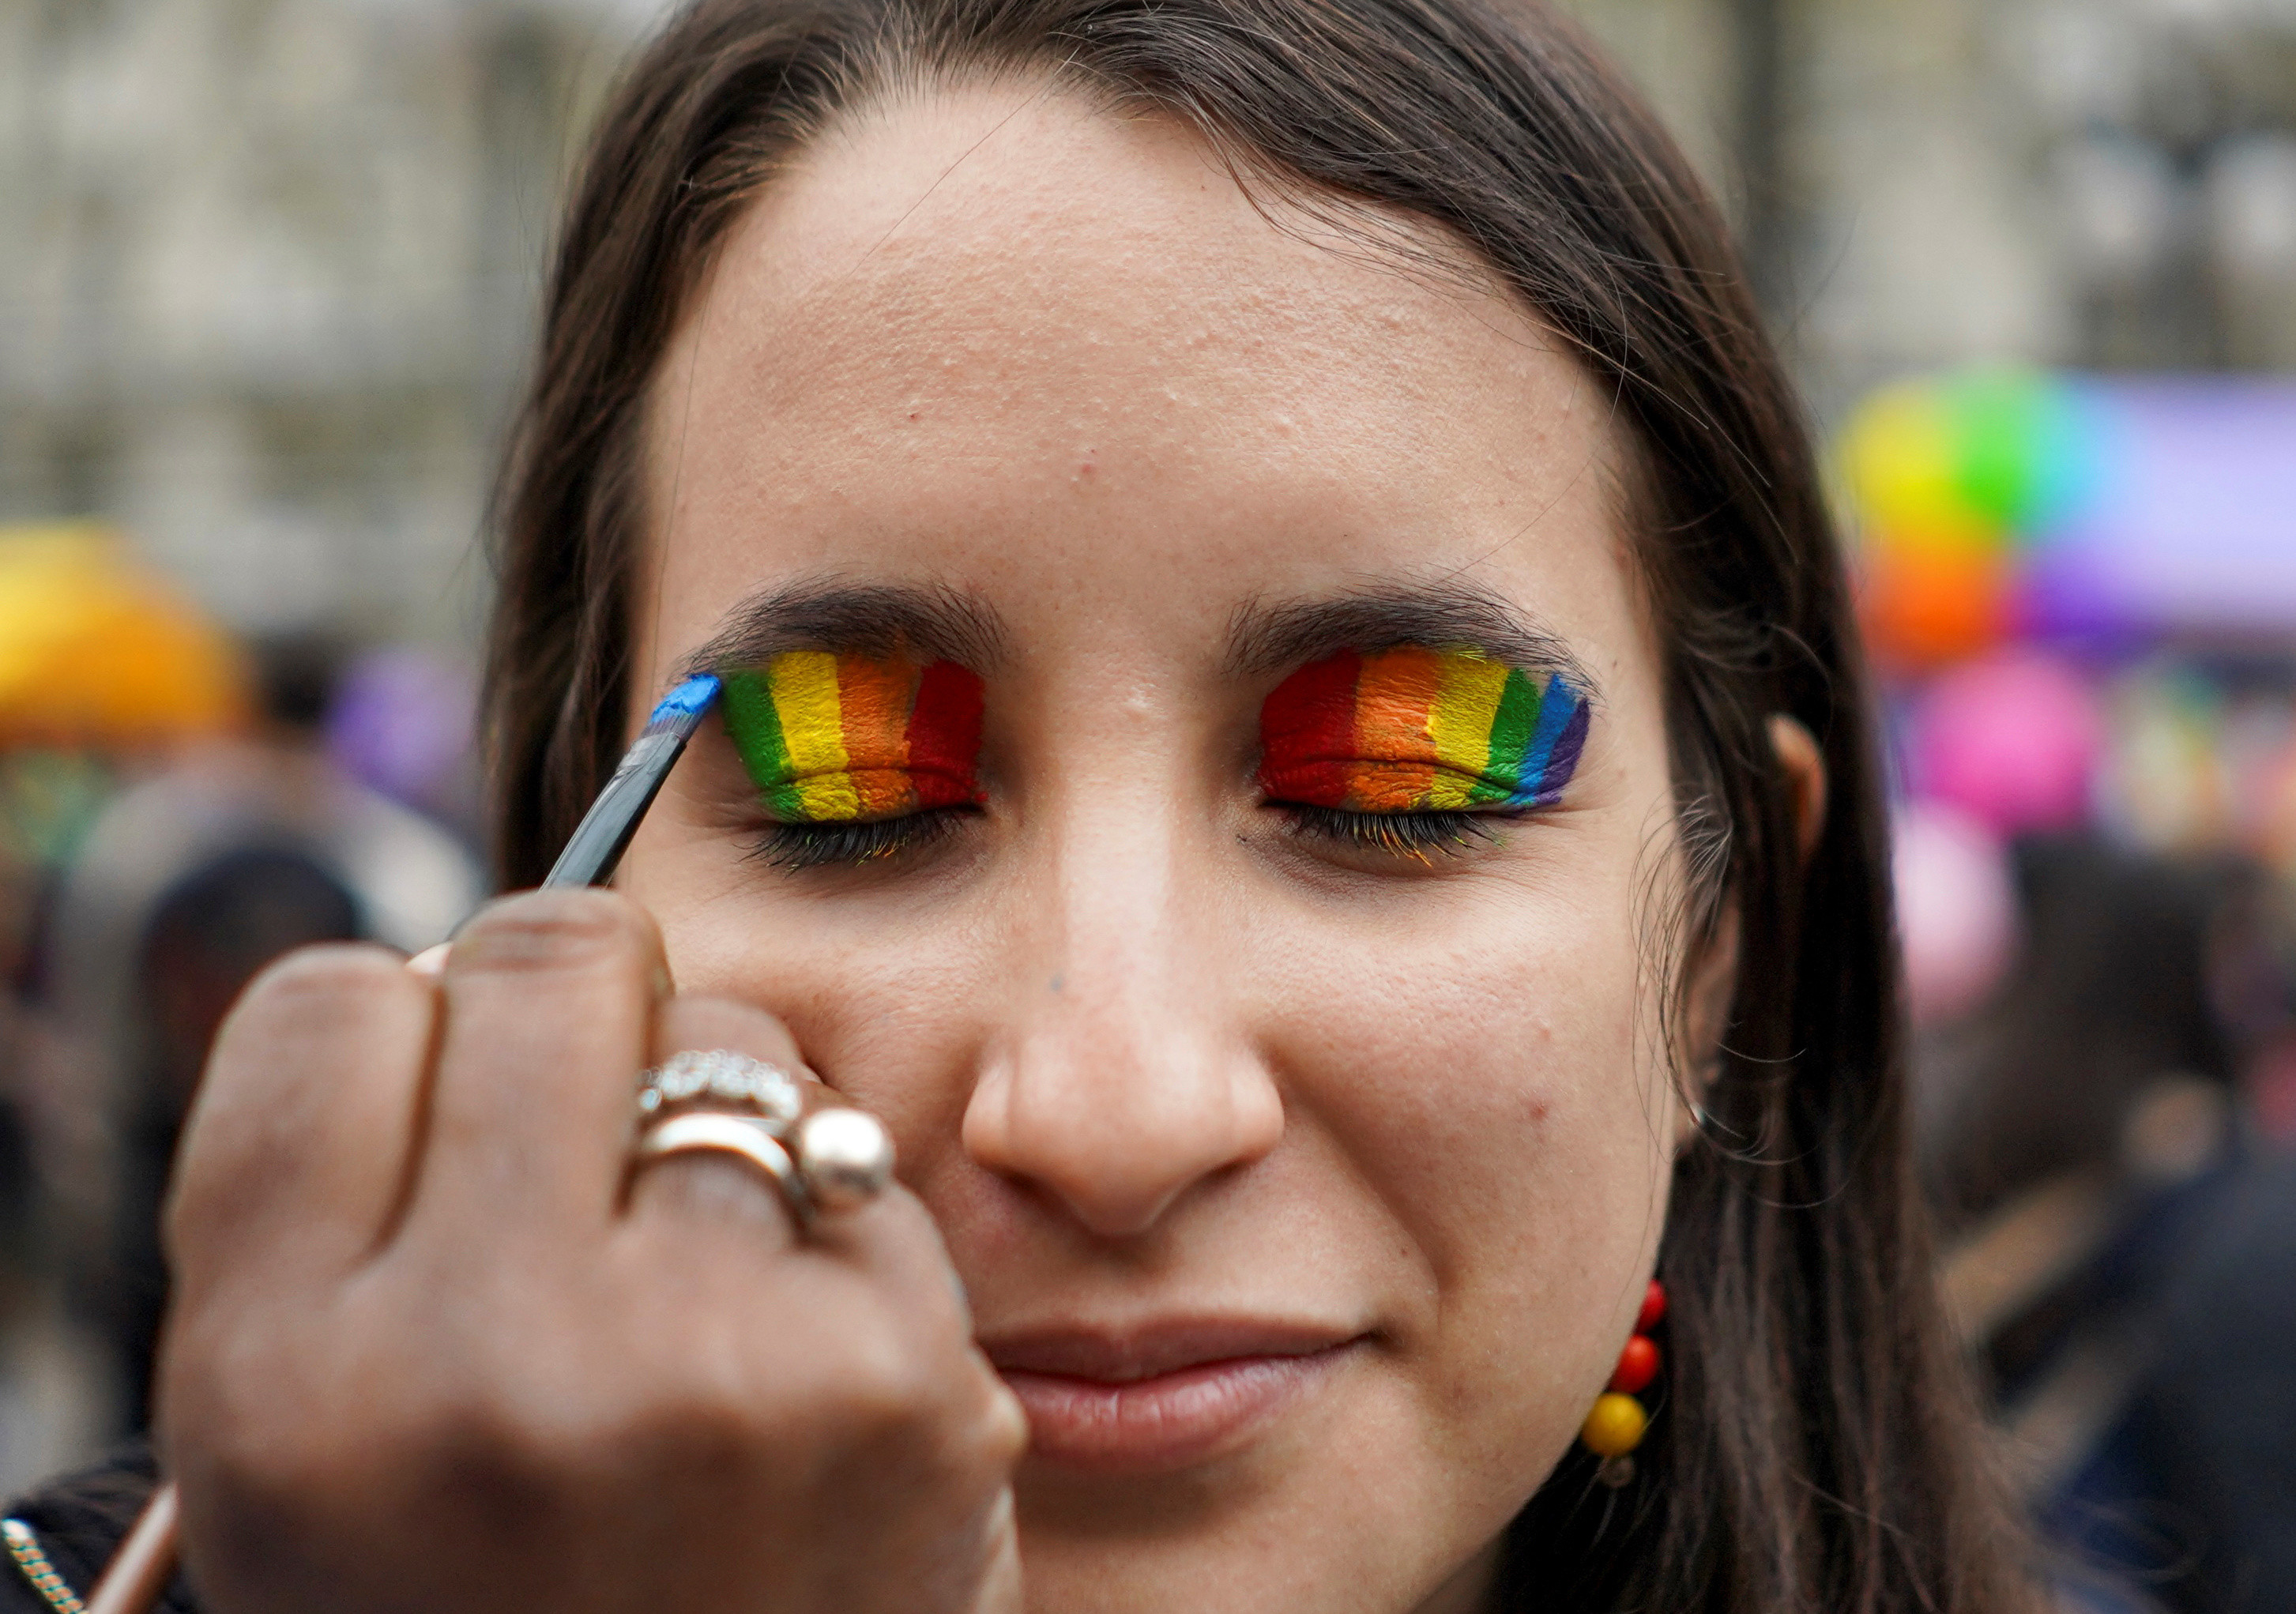 A member of the LGBT community gets ready to participate in the annual Diversity March, which this year has been downscaled amid the coronavirus disease (COVID-19) pandemic, in downtown Montevideo, Uruguay September 25, 2020. Picture taken September 25, 2020. REUTERS/Mariana Greif - RC2I6J94RKJ6